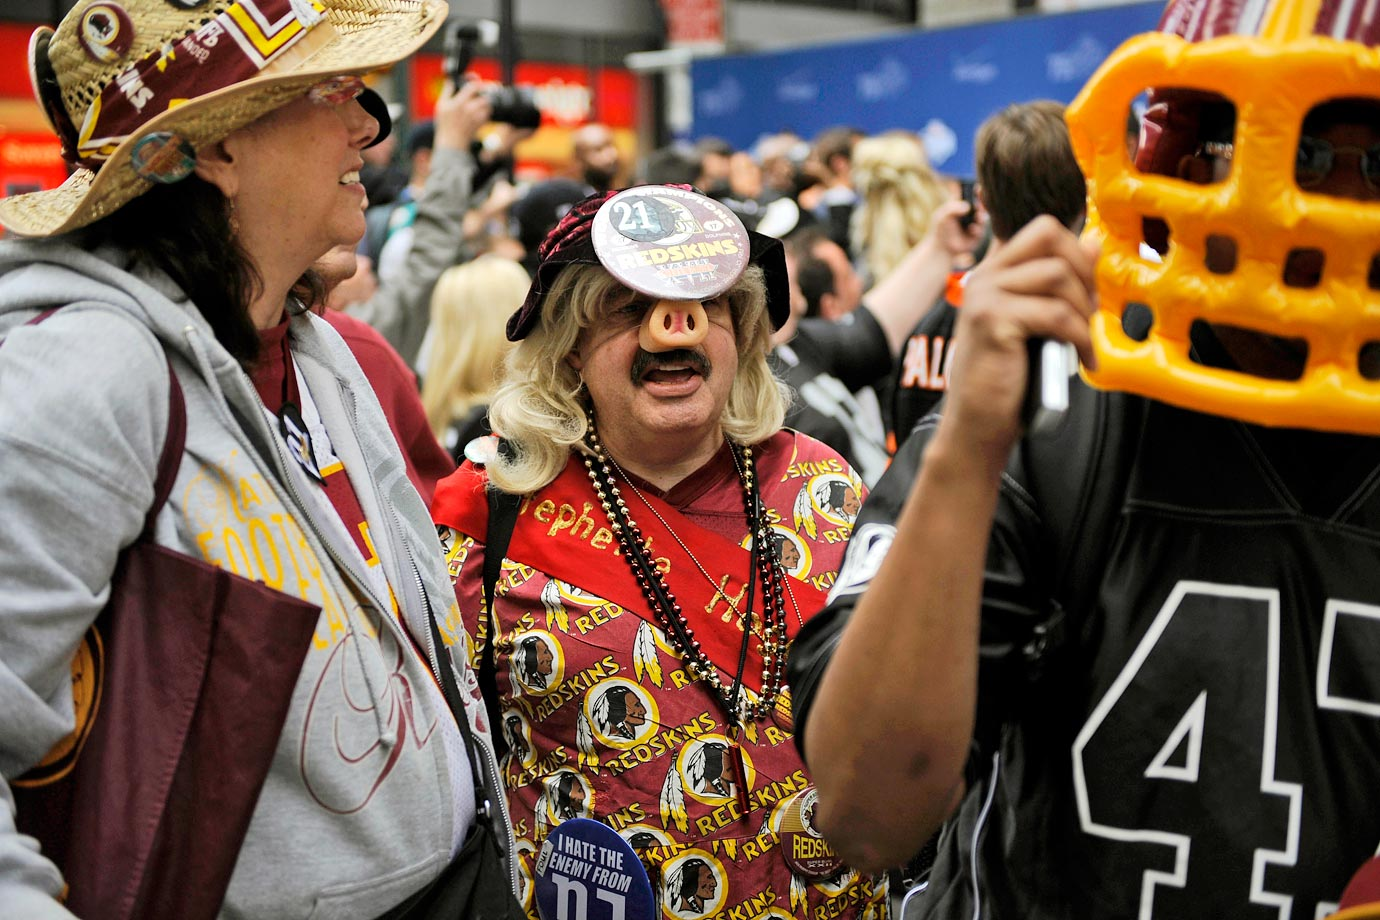 Washington Redskins fans in 2010.